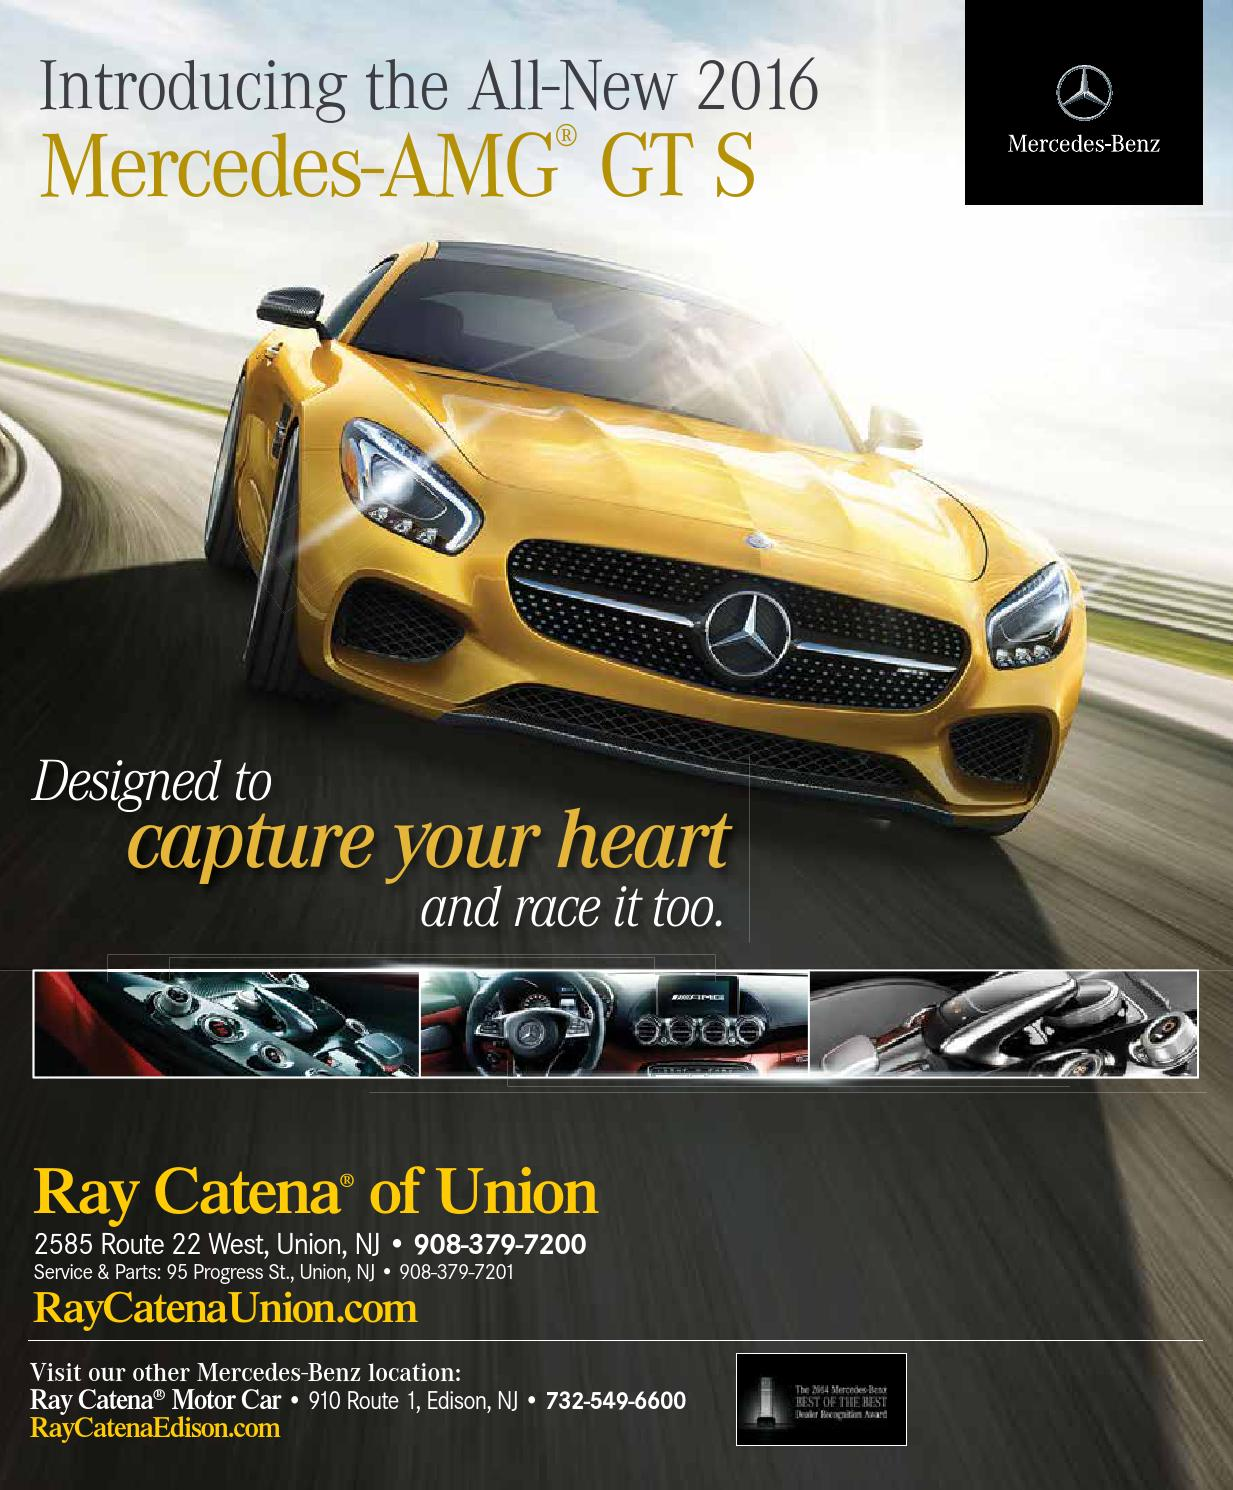 The art of fashion may june 2015 by mod media llc issuu for Ray catena mercedes benz edison nj